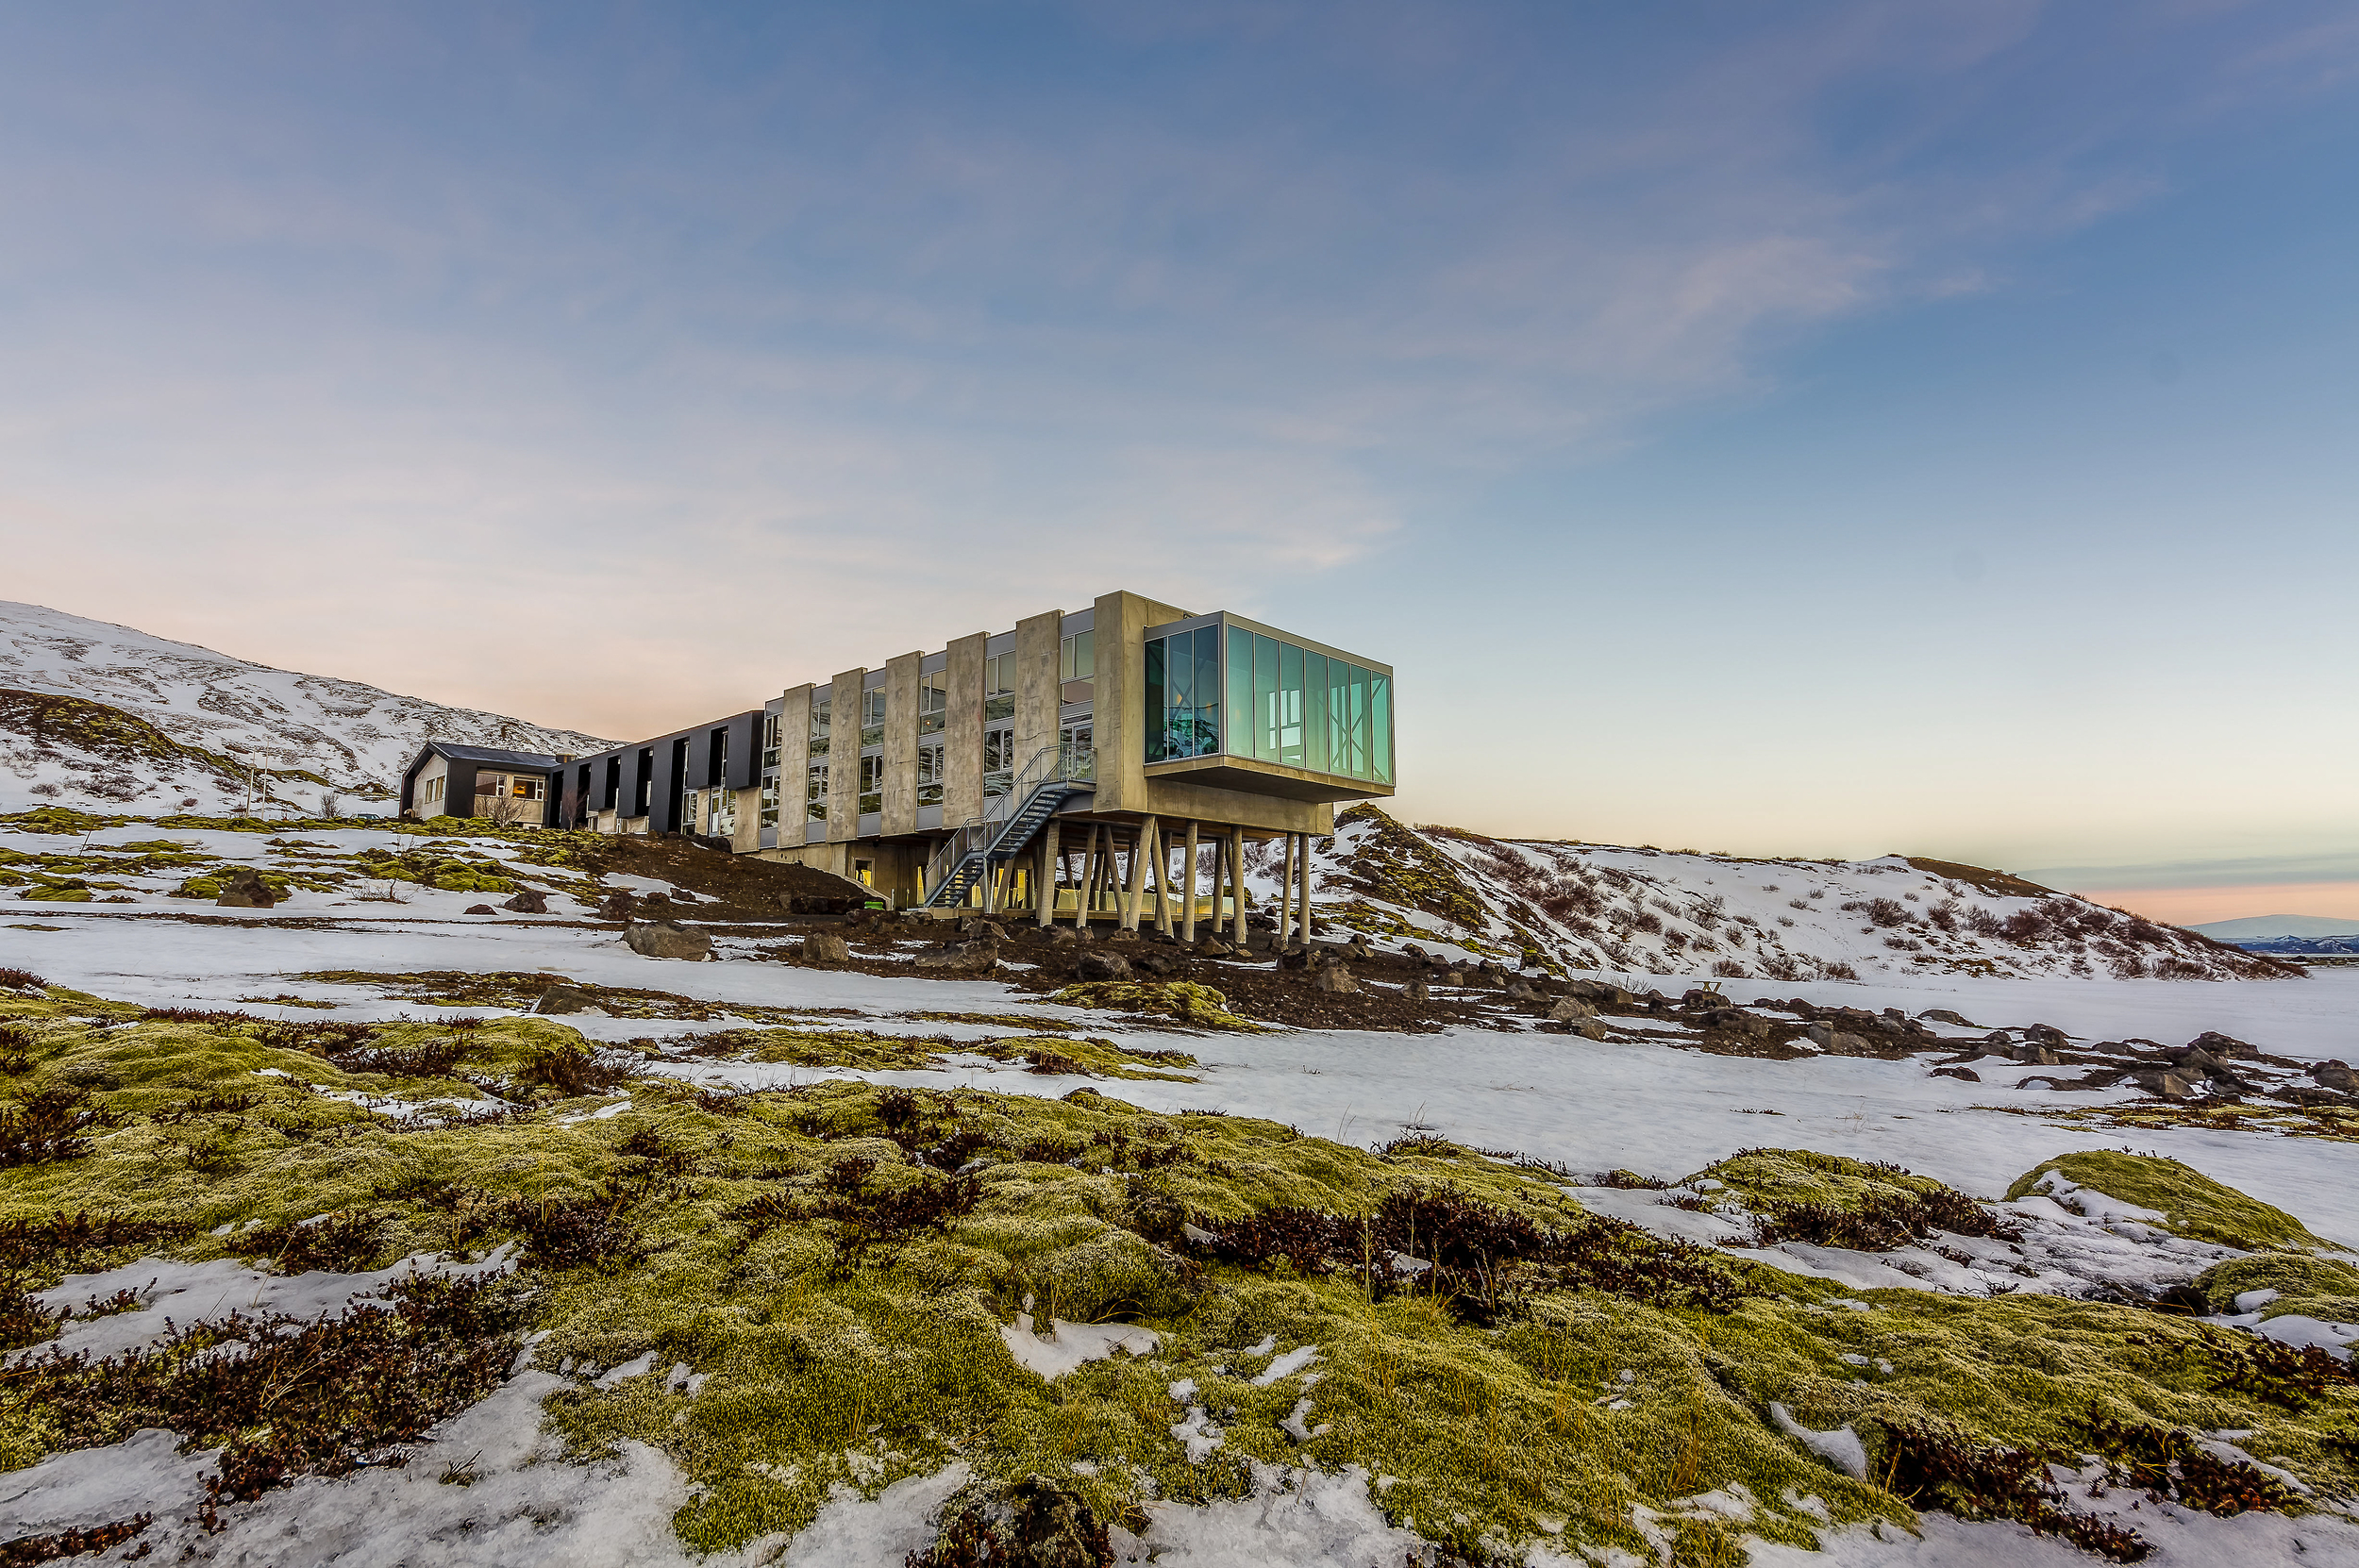 Wild Iceland - Architecture and Reykjavik-10.jpg